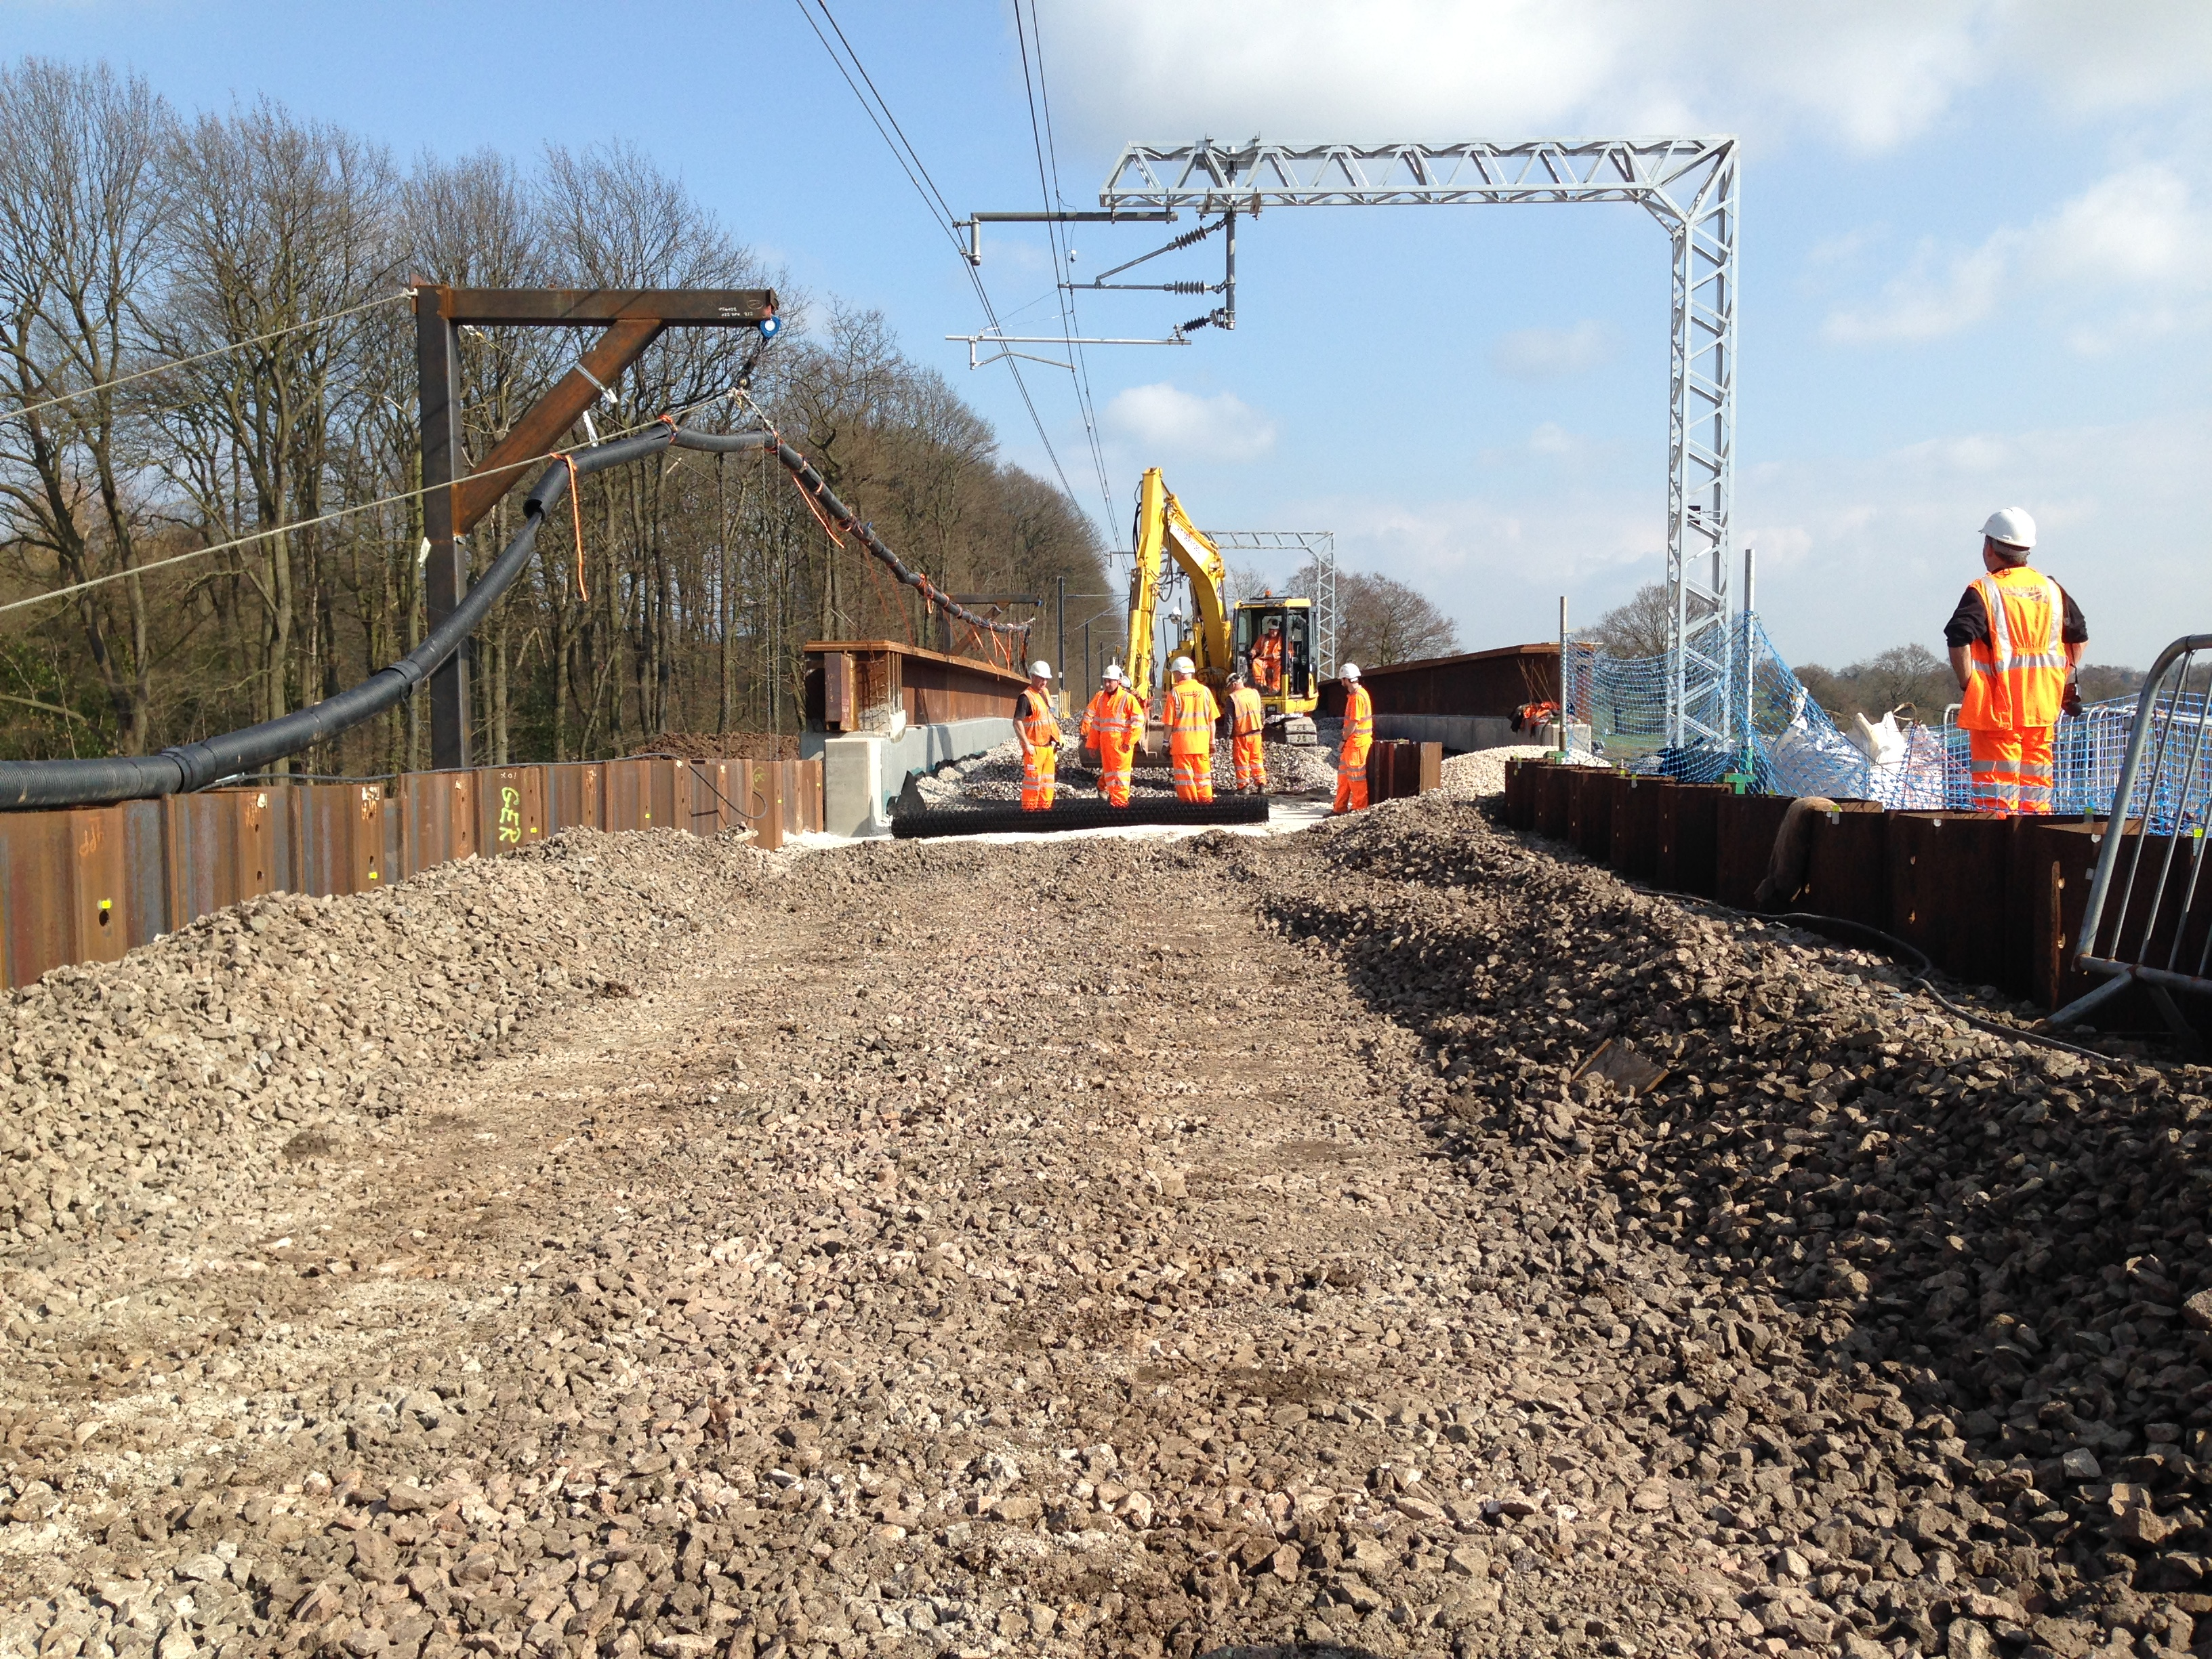 Site workers roll out Tensar geogird on railway track